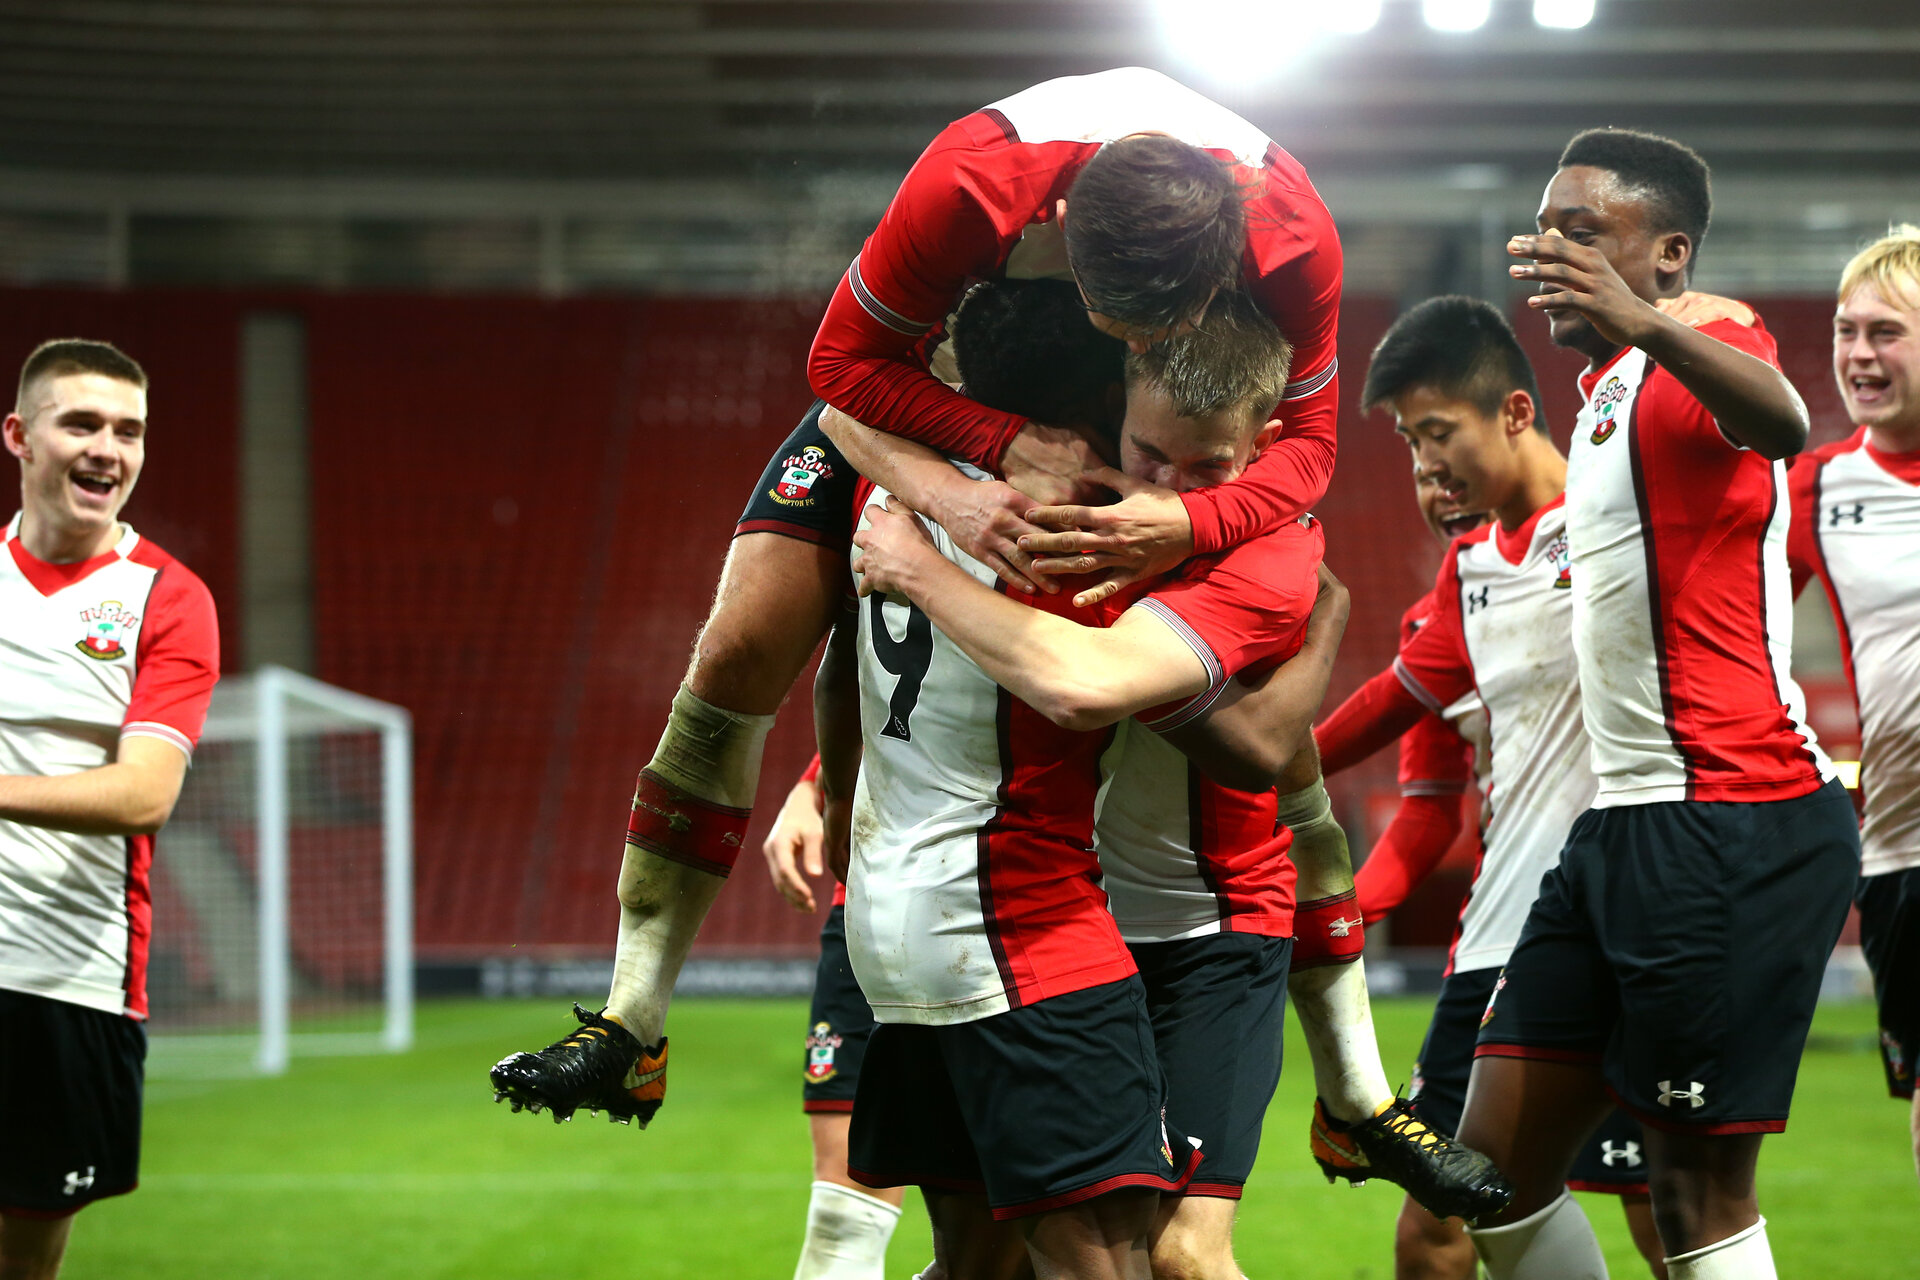 SOUTHAMPTON, ENGLAND - DECEMBER 14: Michael Obafemi scores (middle) during the match between Southampton FC vs Wolverhampton Wanders for the FA U18's Youth Cup on December 14, 2017 in Southampton, England. (Photo by James Bridle - Southampton FC/Southampton FC via Getty Images)